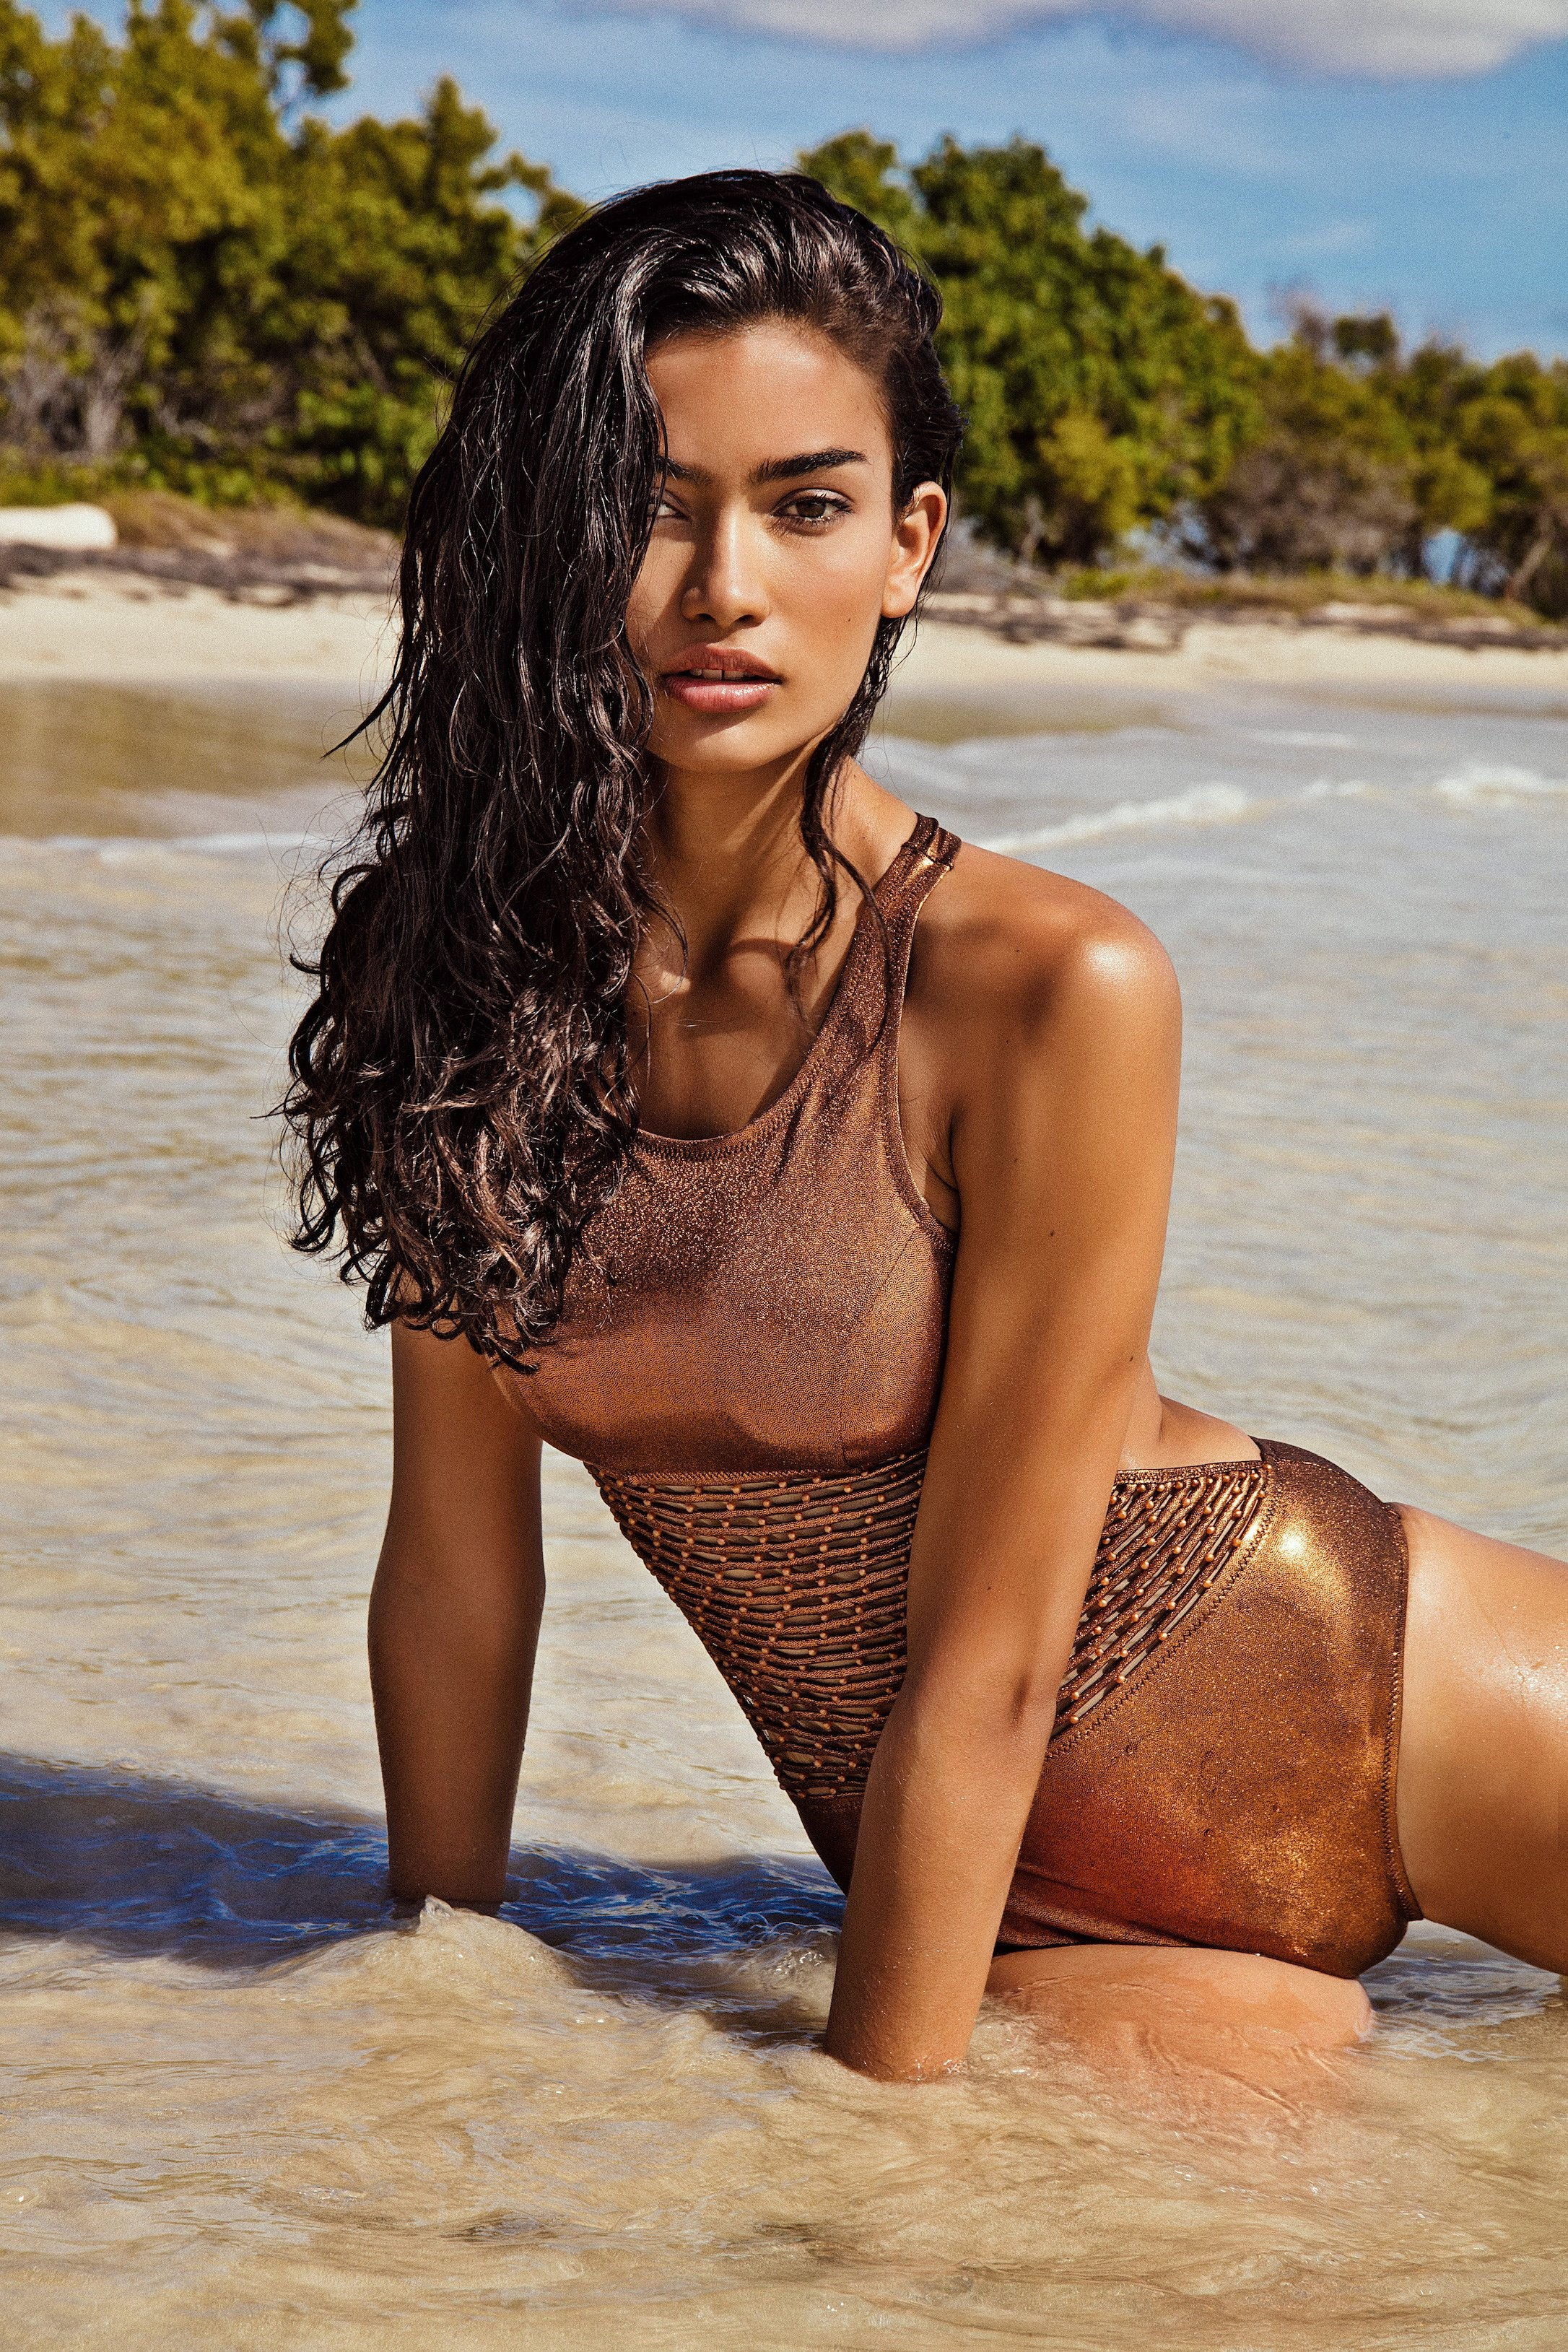 Kelly Gale nude, naked - Pics and Videos - ImperiodeFamosas